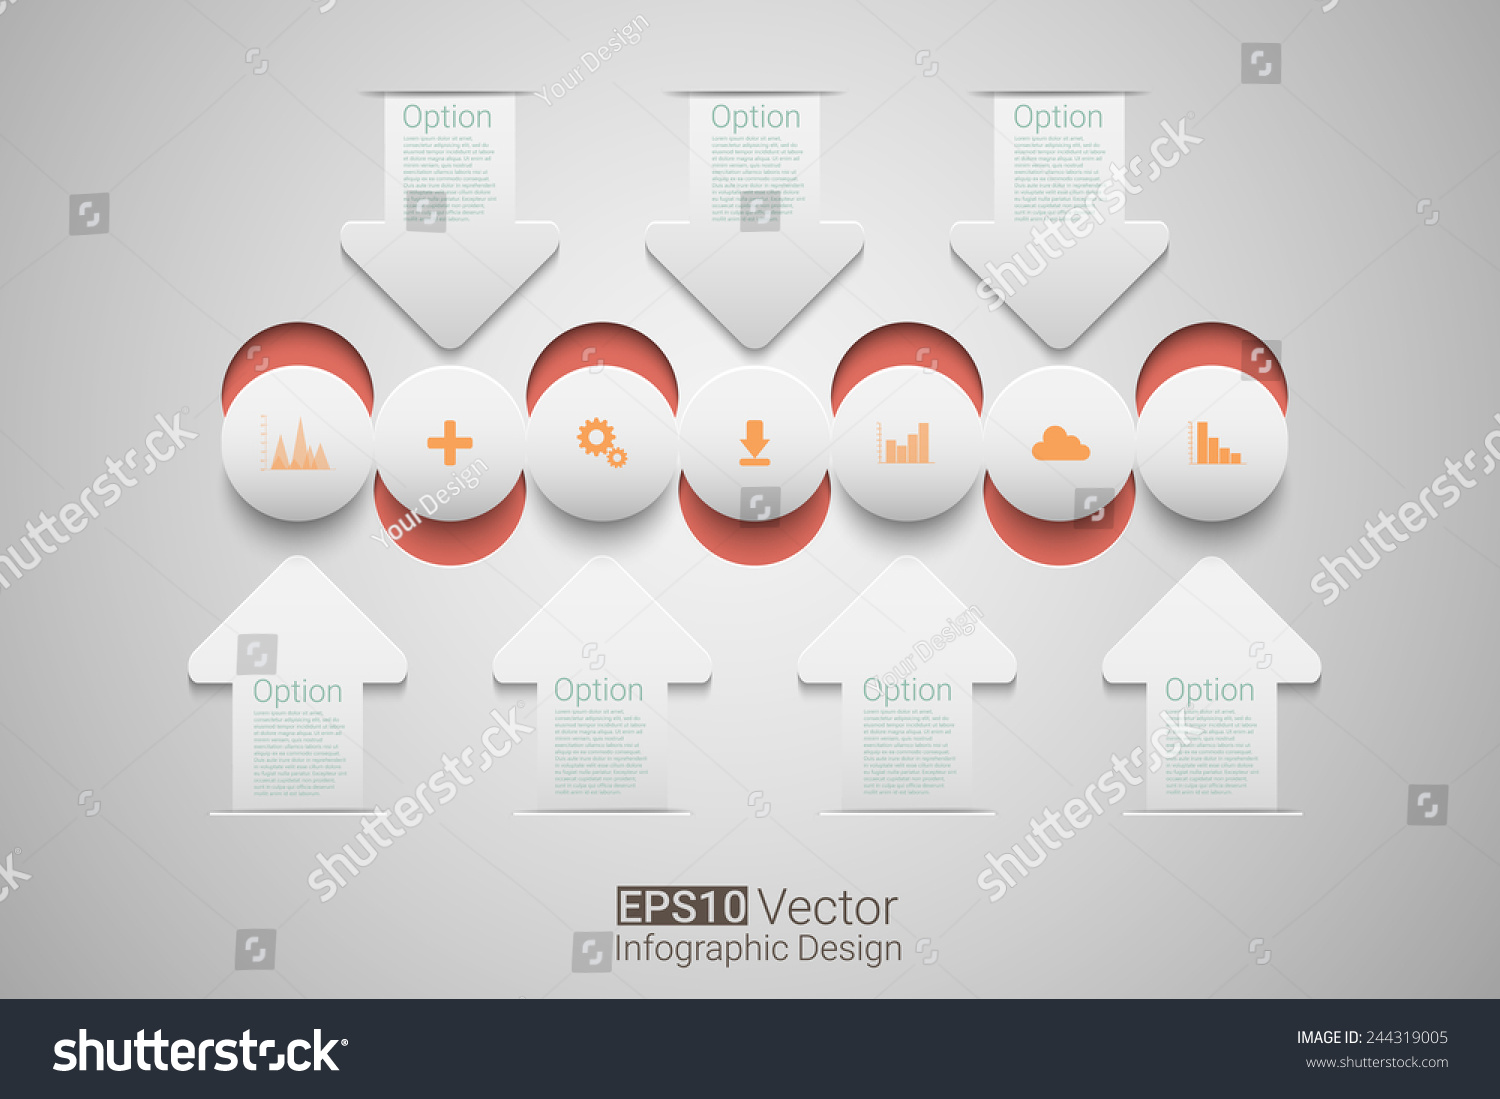 Creative Circles Arrows Infographic Template Timeline Stock Vector